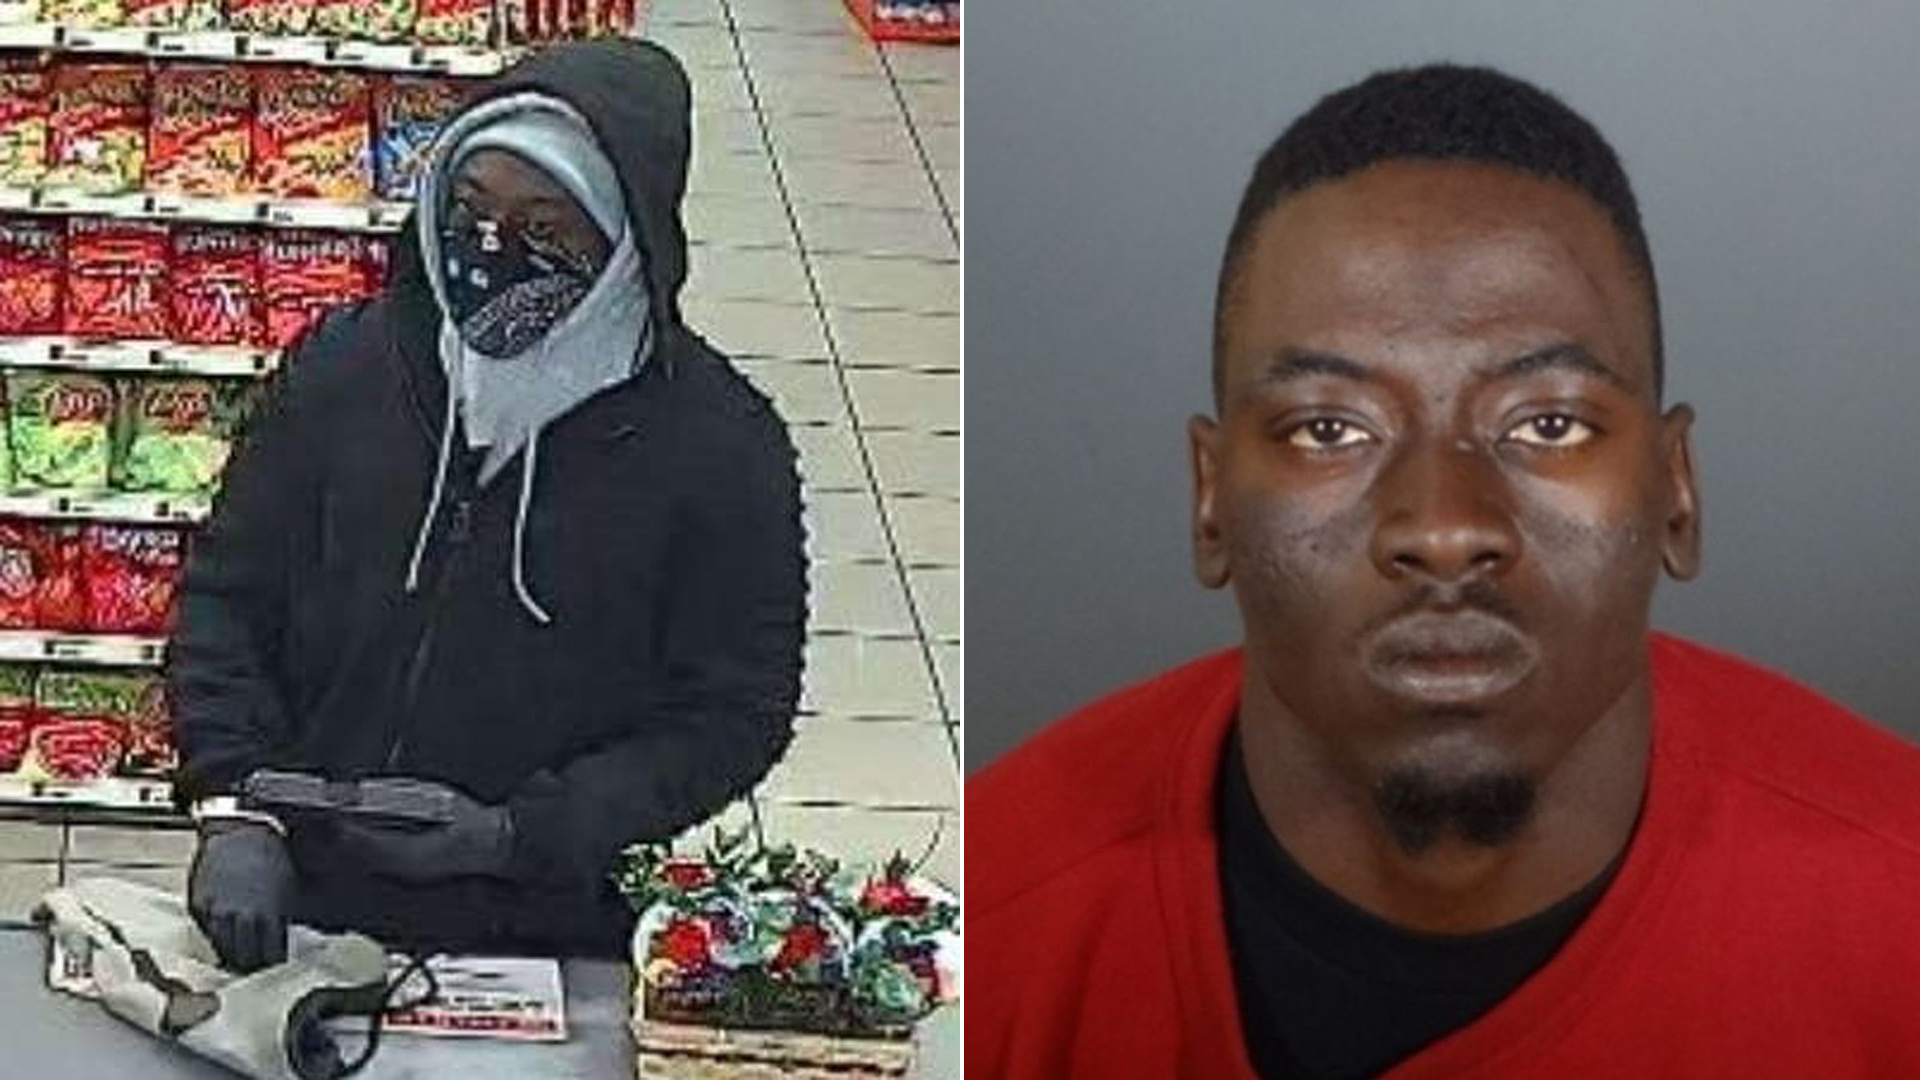 Whittier police released a surveillance still of the suspect, seen left, on Feb. 22, 2020; a booking photo of Kevin Hall, right, was released by police on March 10, 2020.